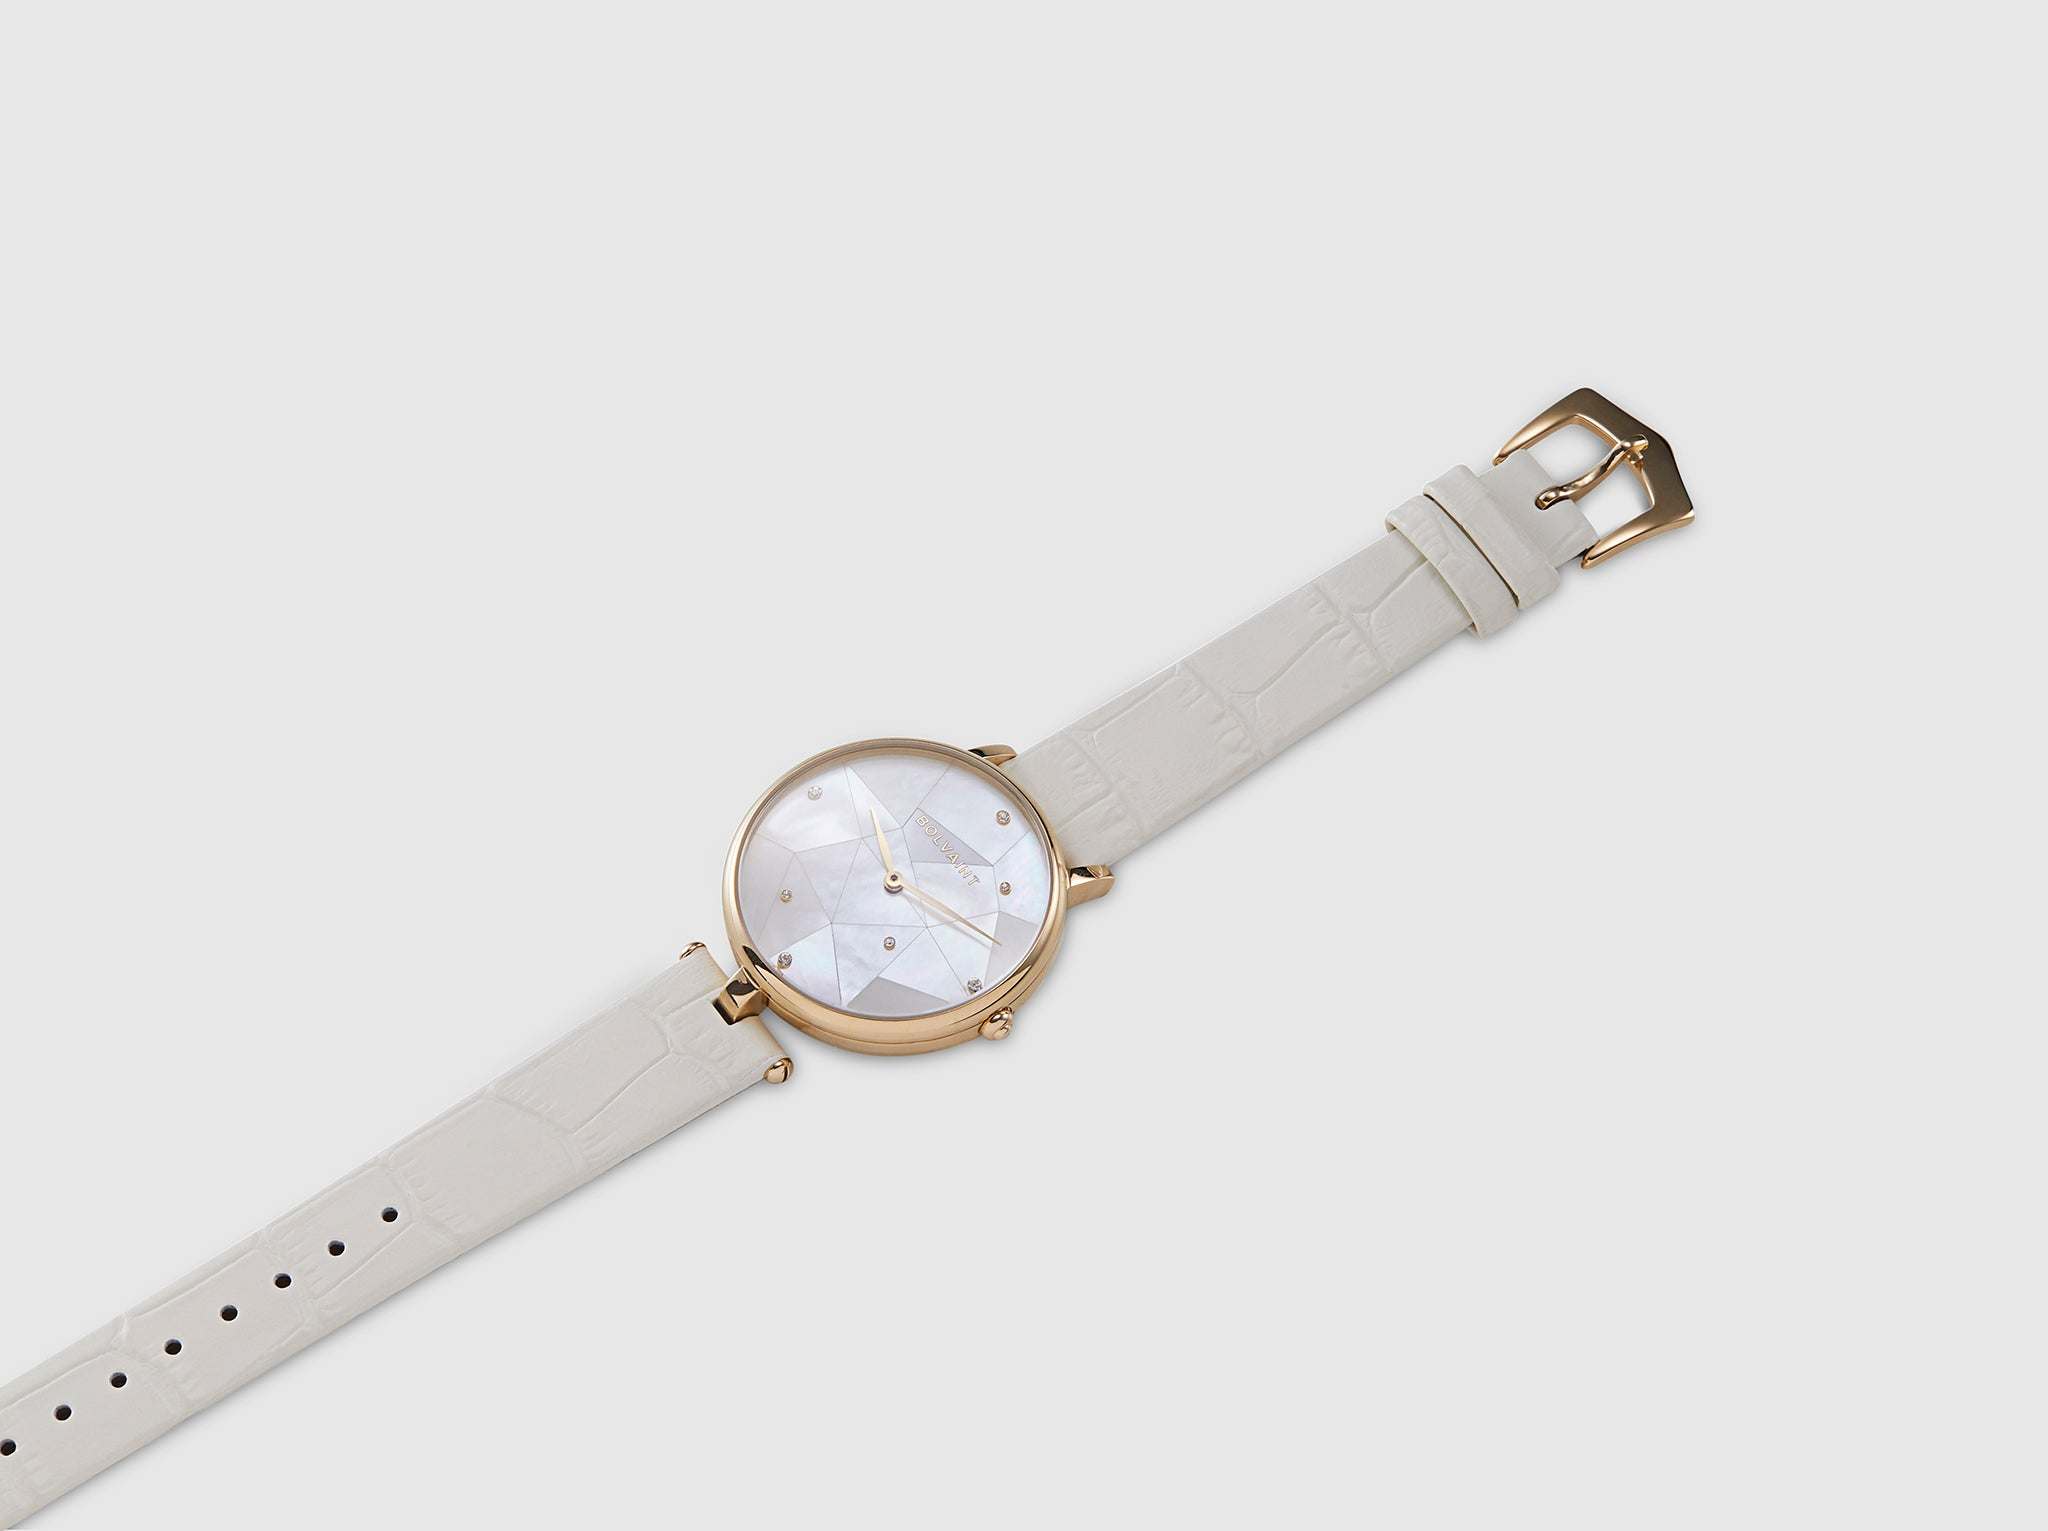 The Bolvaint Vainui Mother-of-Pearl Ladies' Watch – Gold & Ayoka White